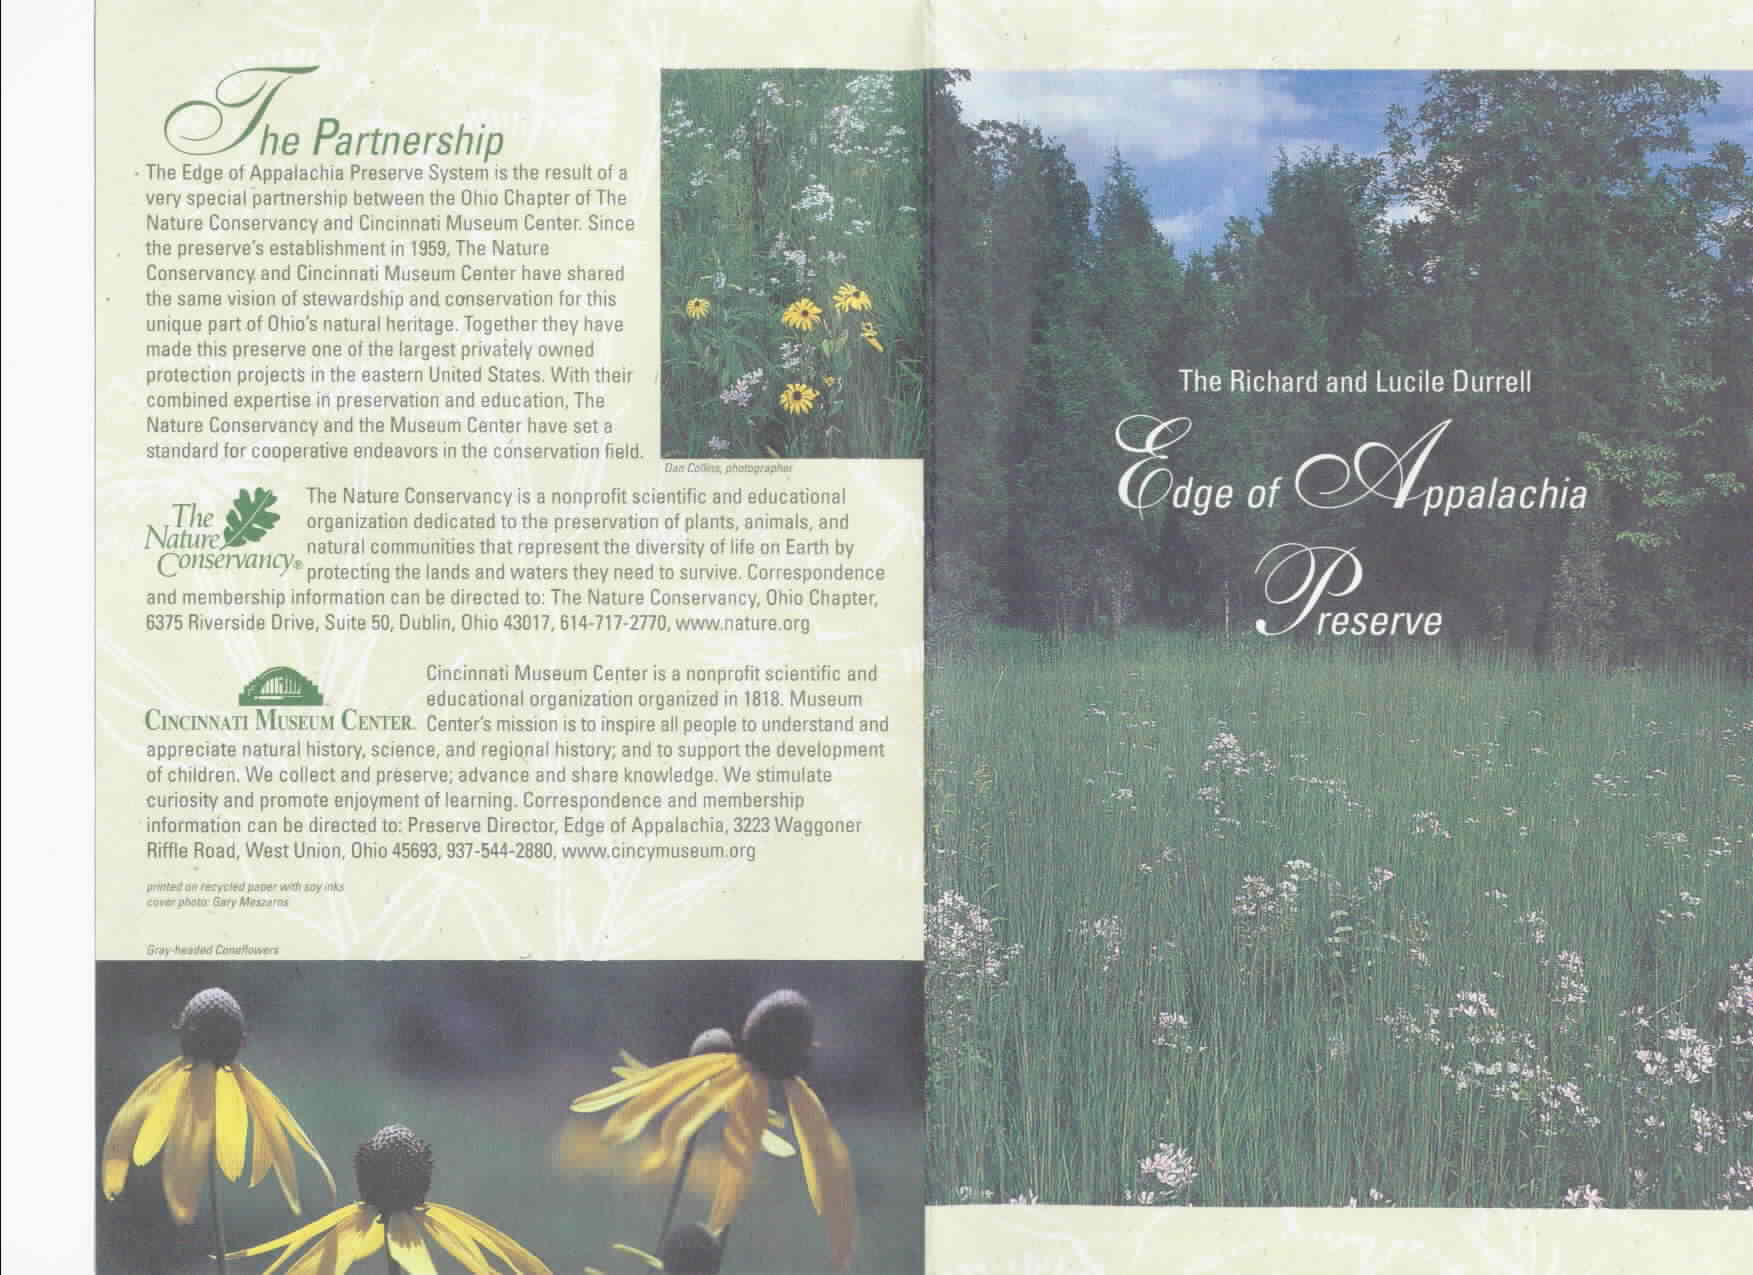 Edge of Appalachia Preserve Brochure 1